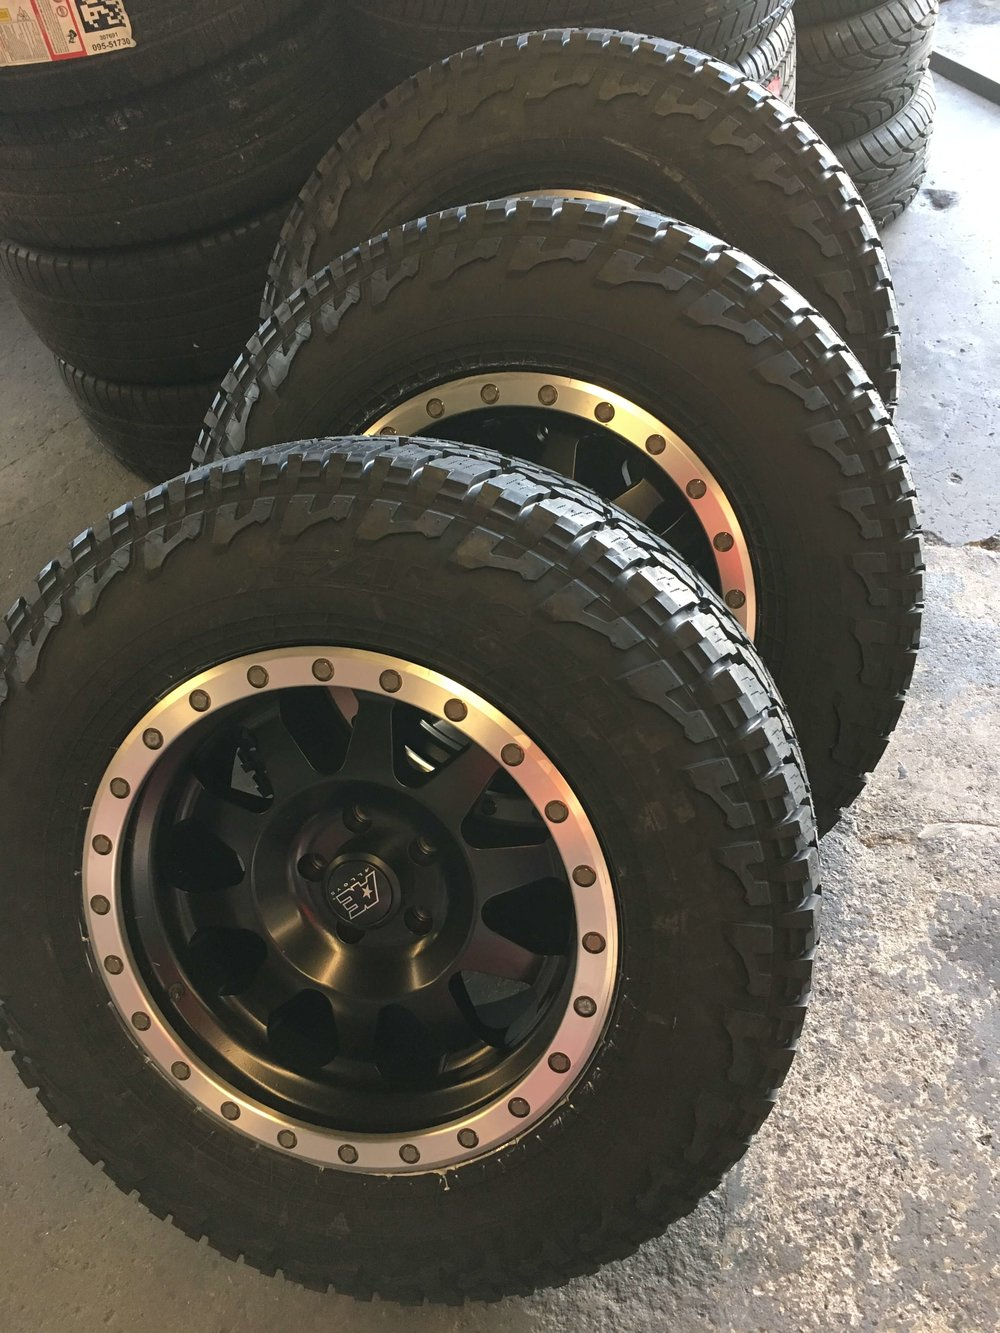 New Set of Tires in Escondido from Audiosport